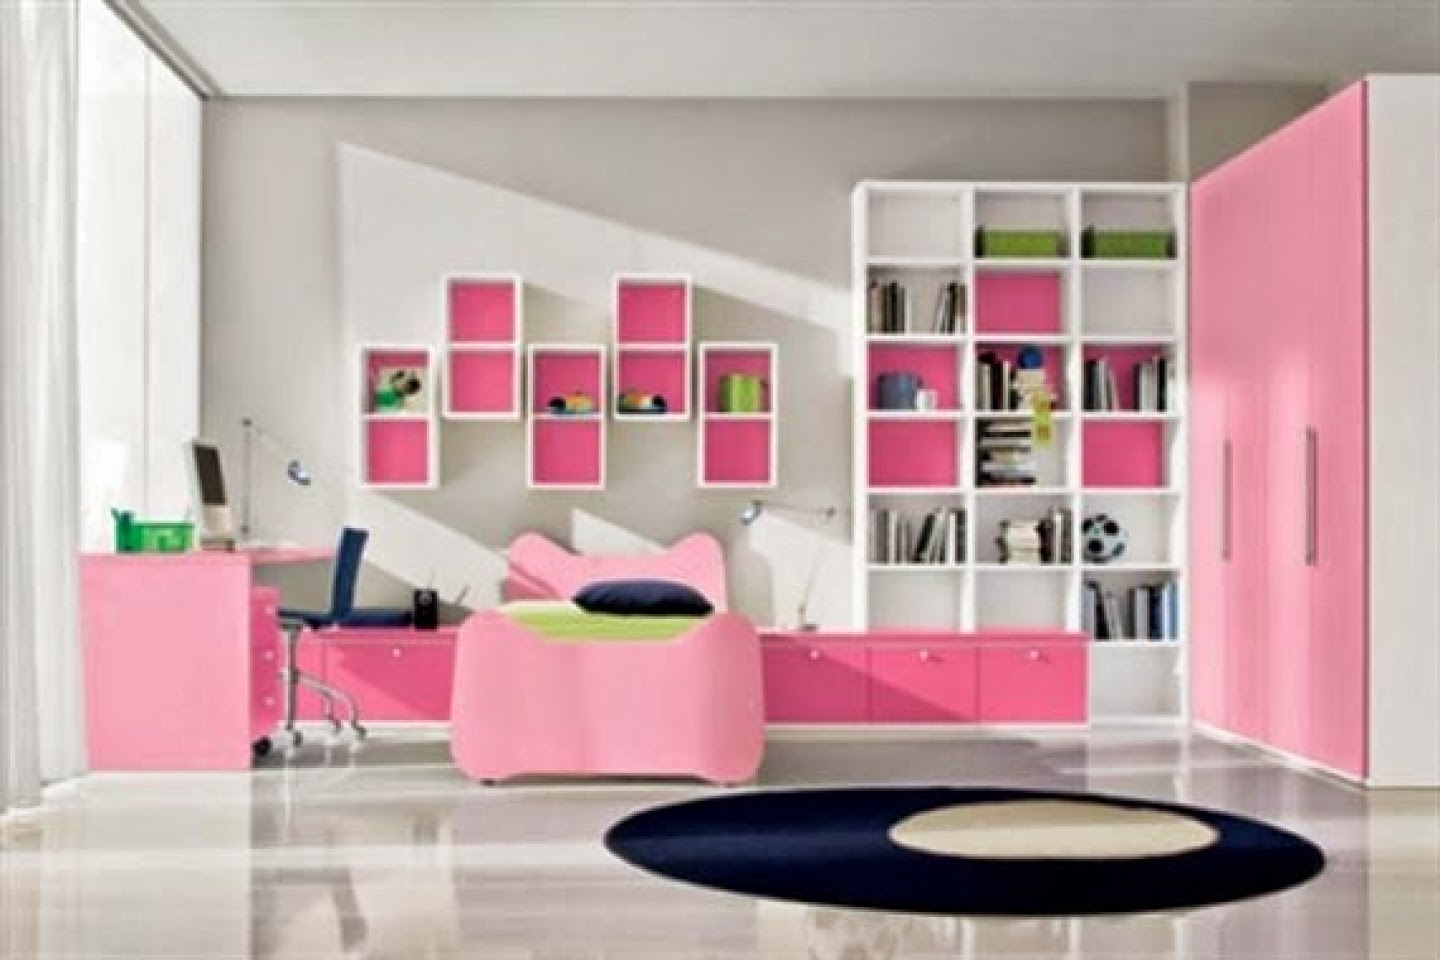 Career Oriented Room For Teens